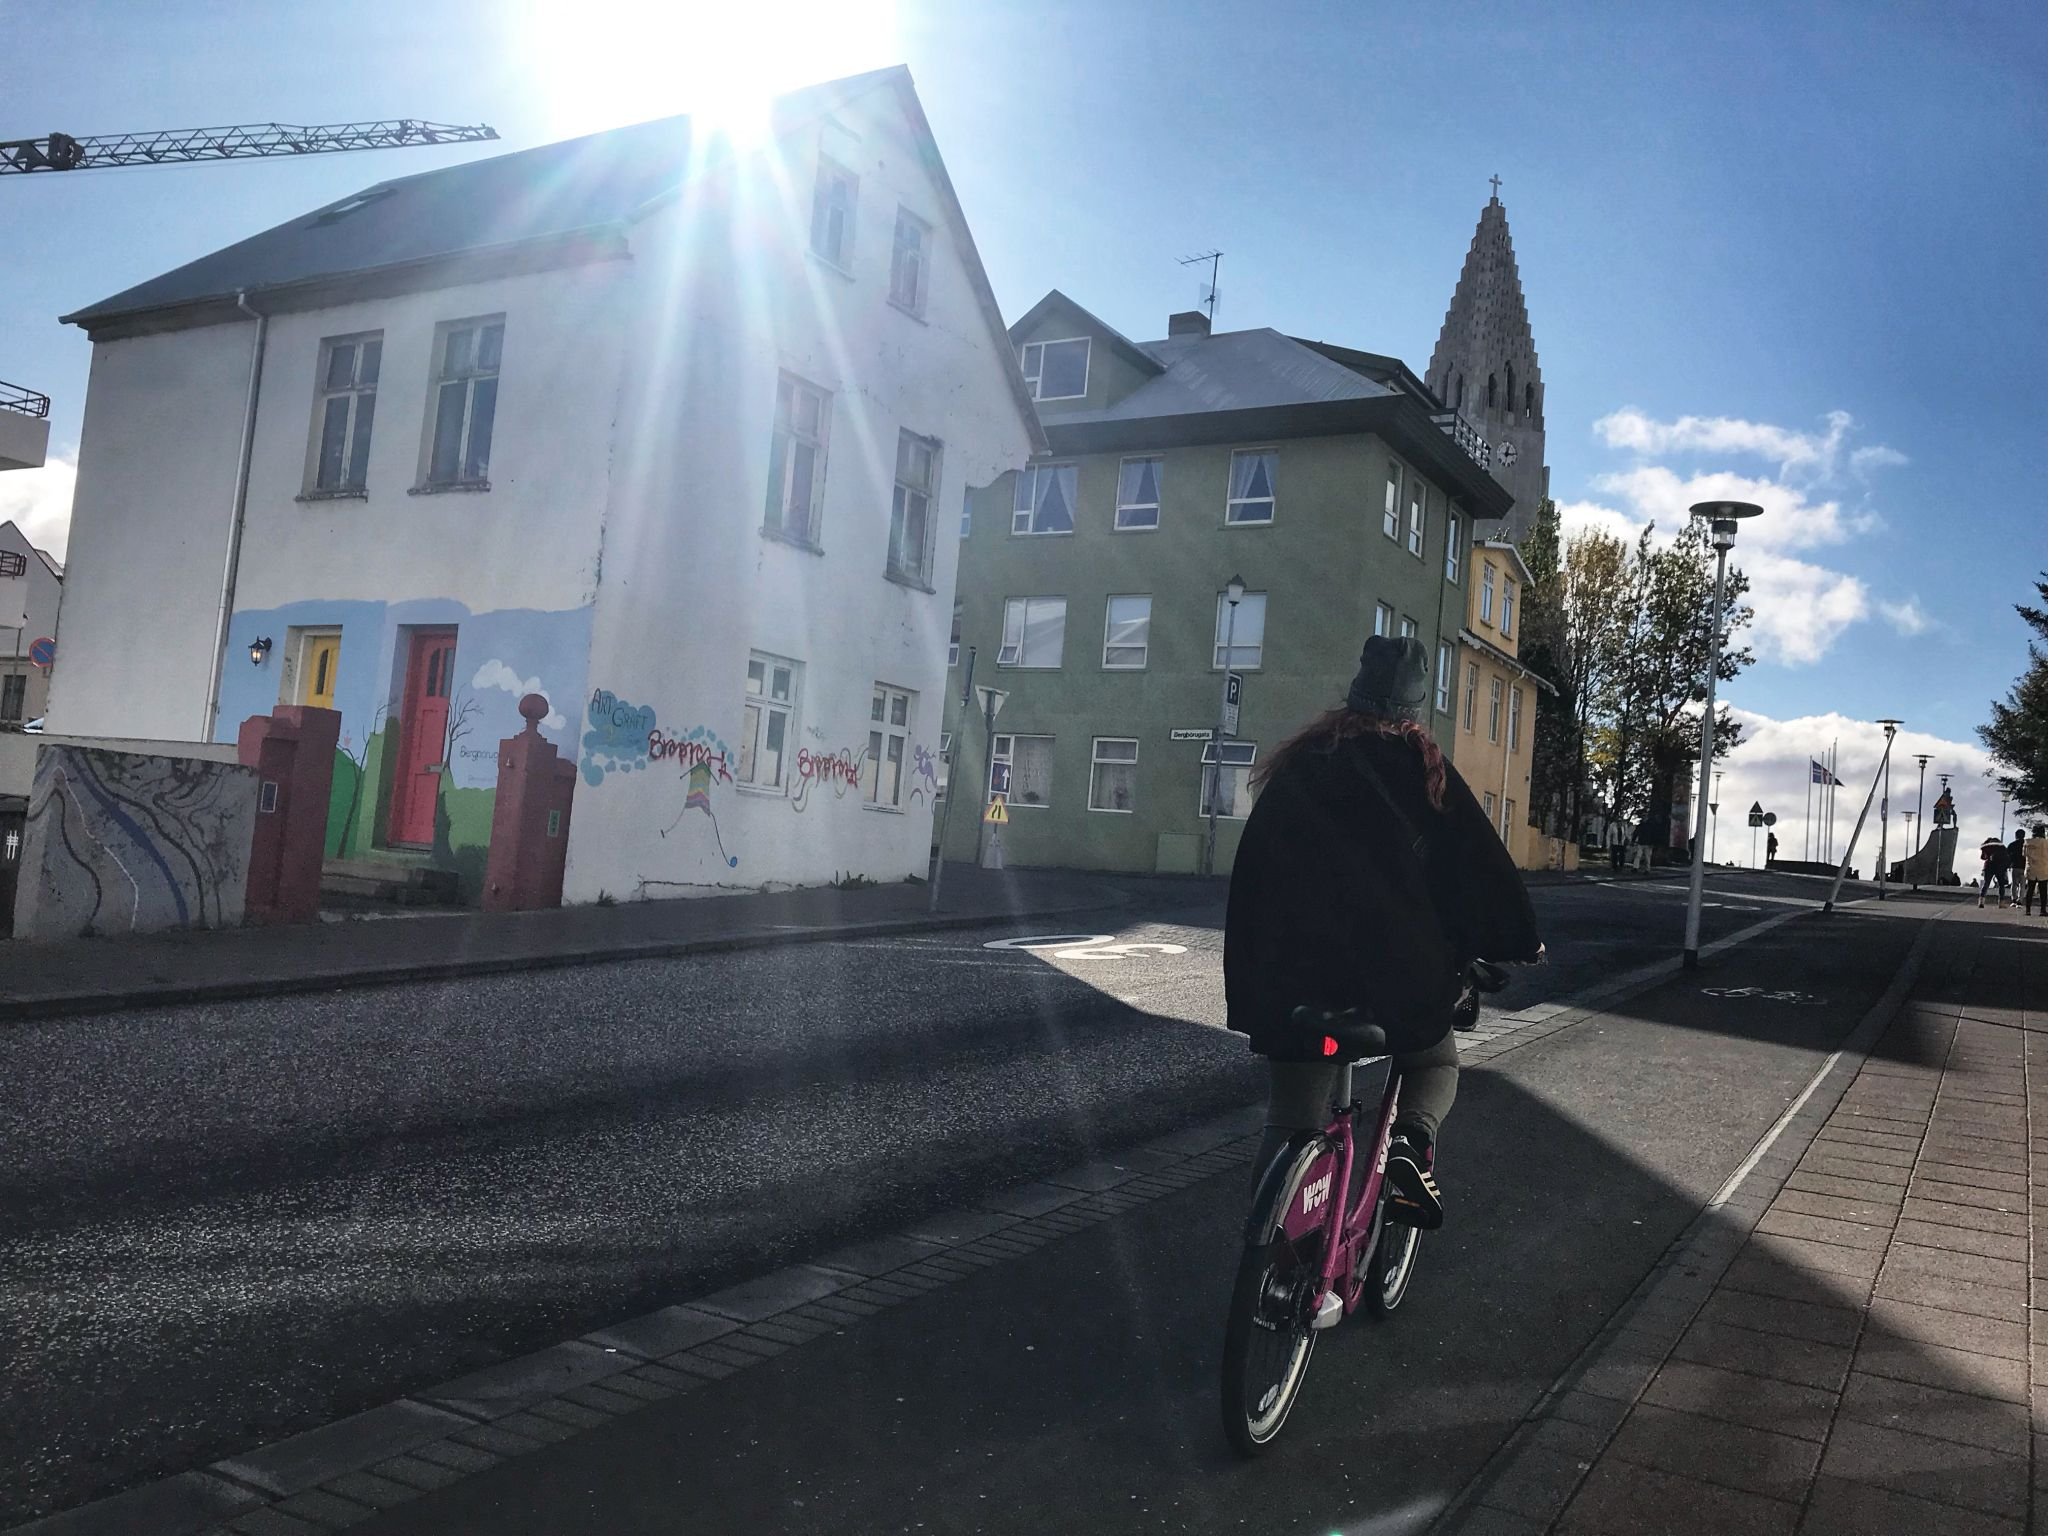 Exploring and sightseeing in Reykjavik Iceland